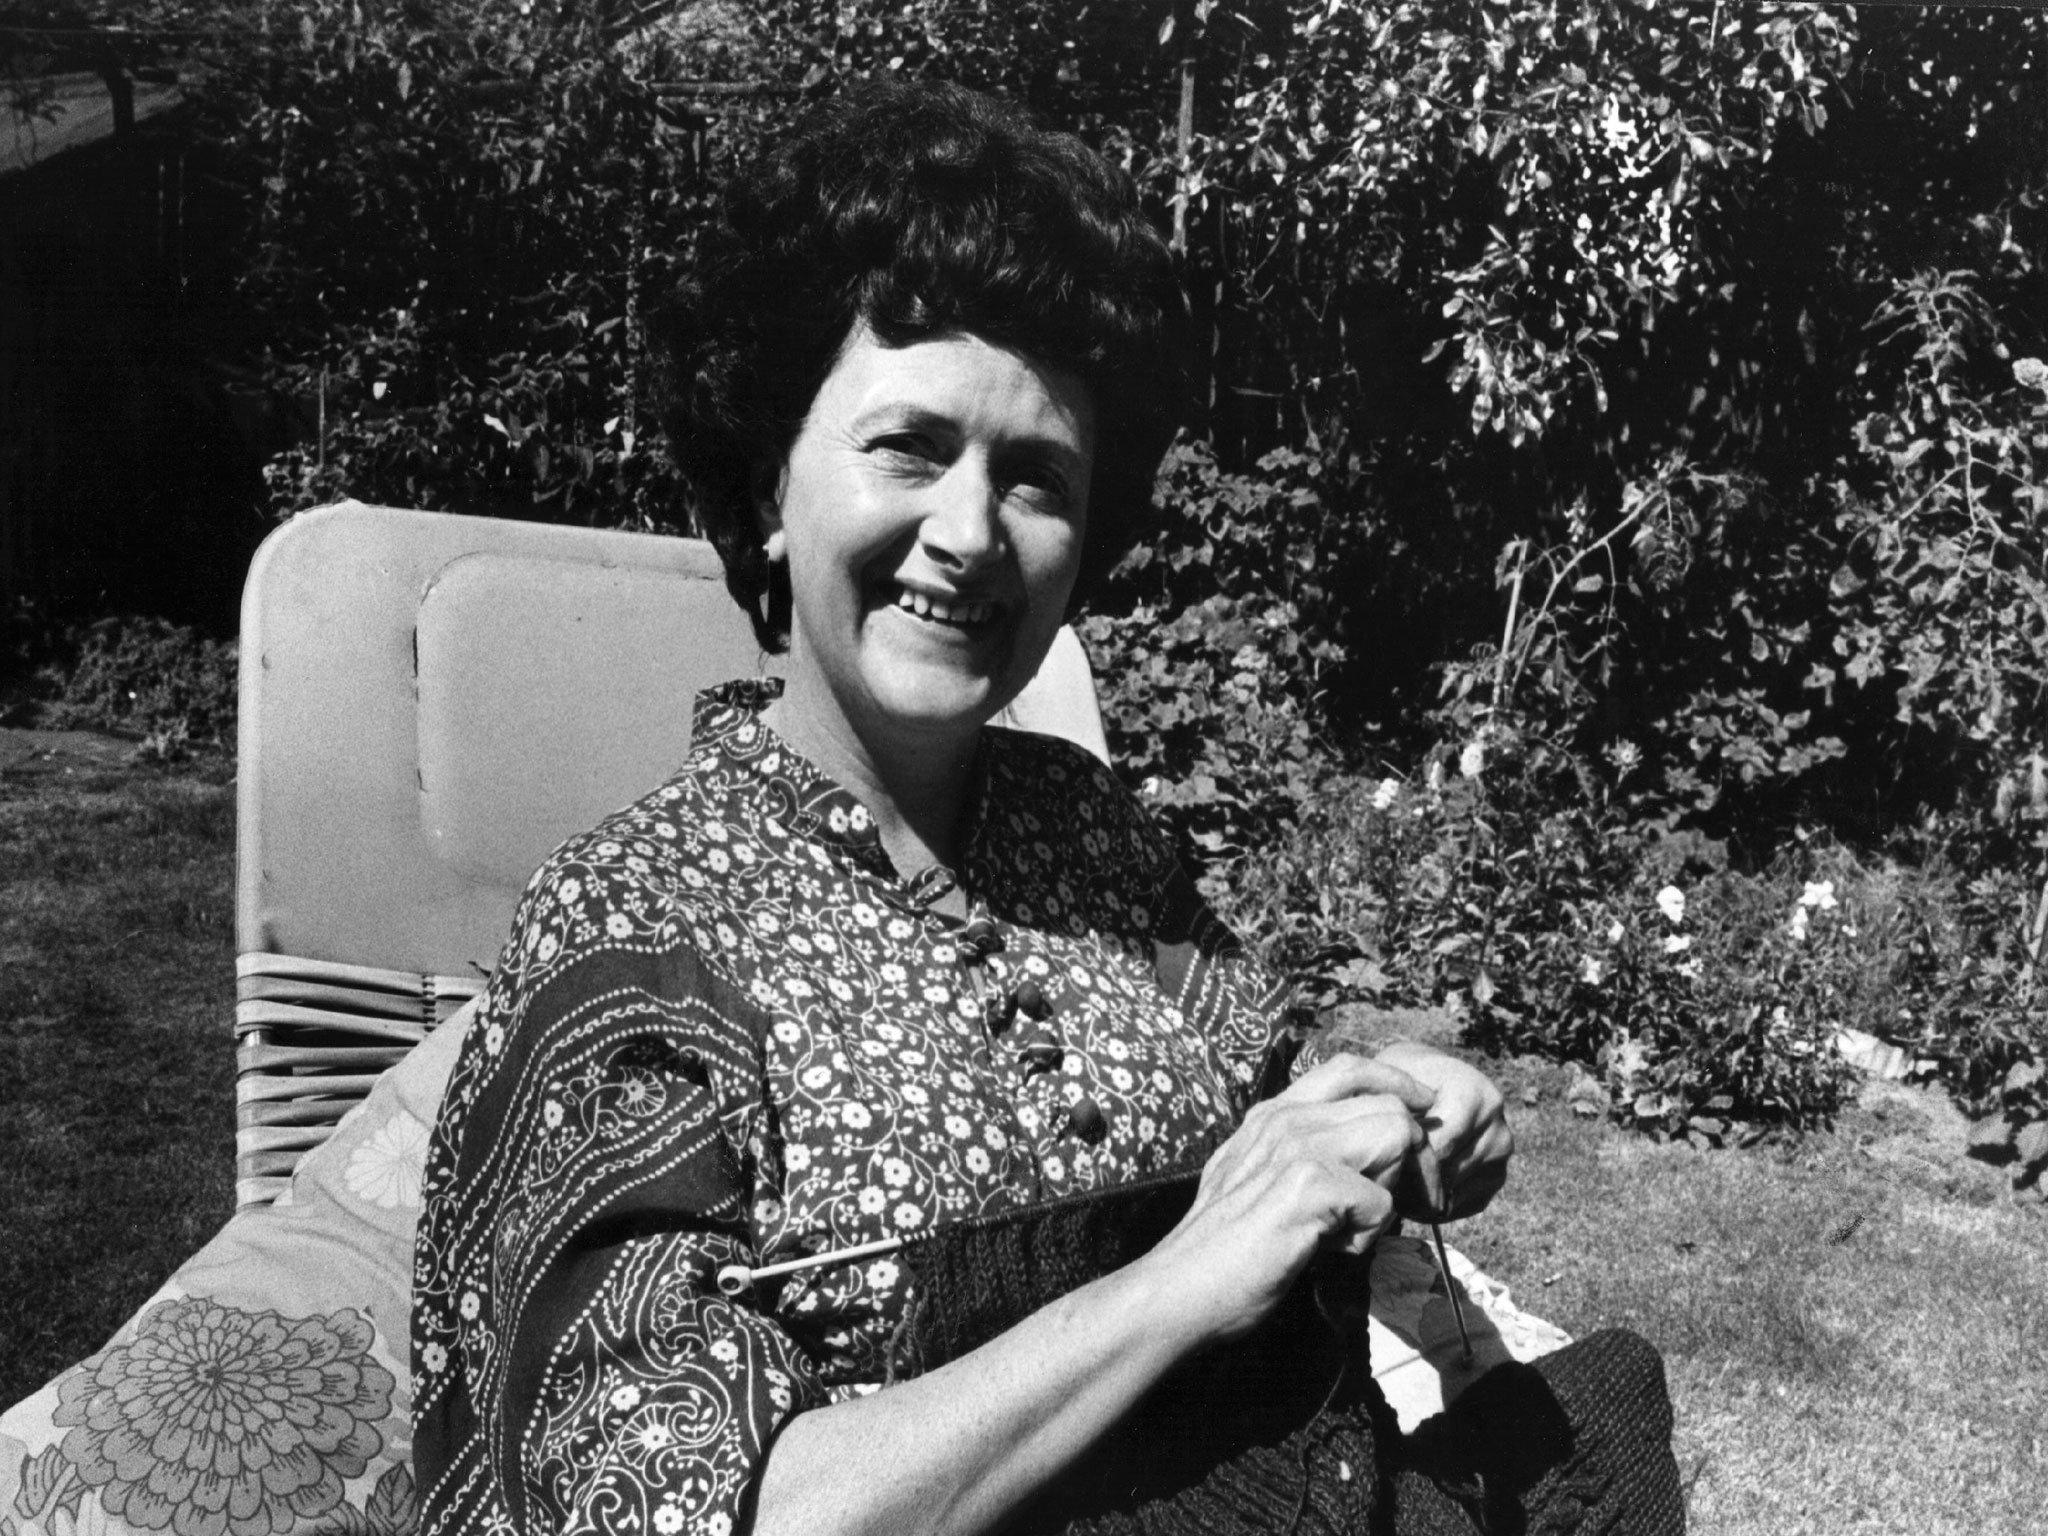 Cynthia knitting in the garden of 32 Ambleside Avenue